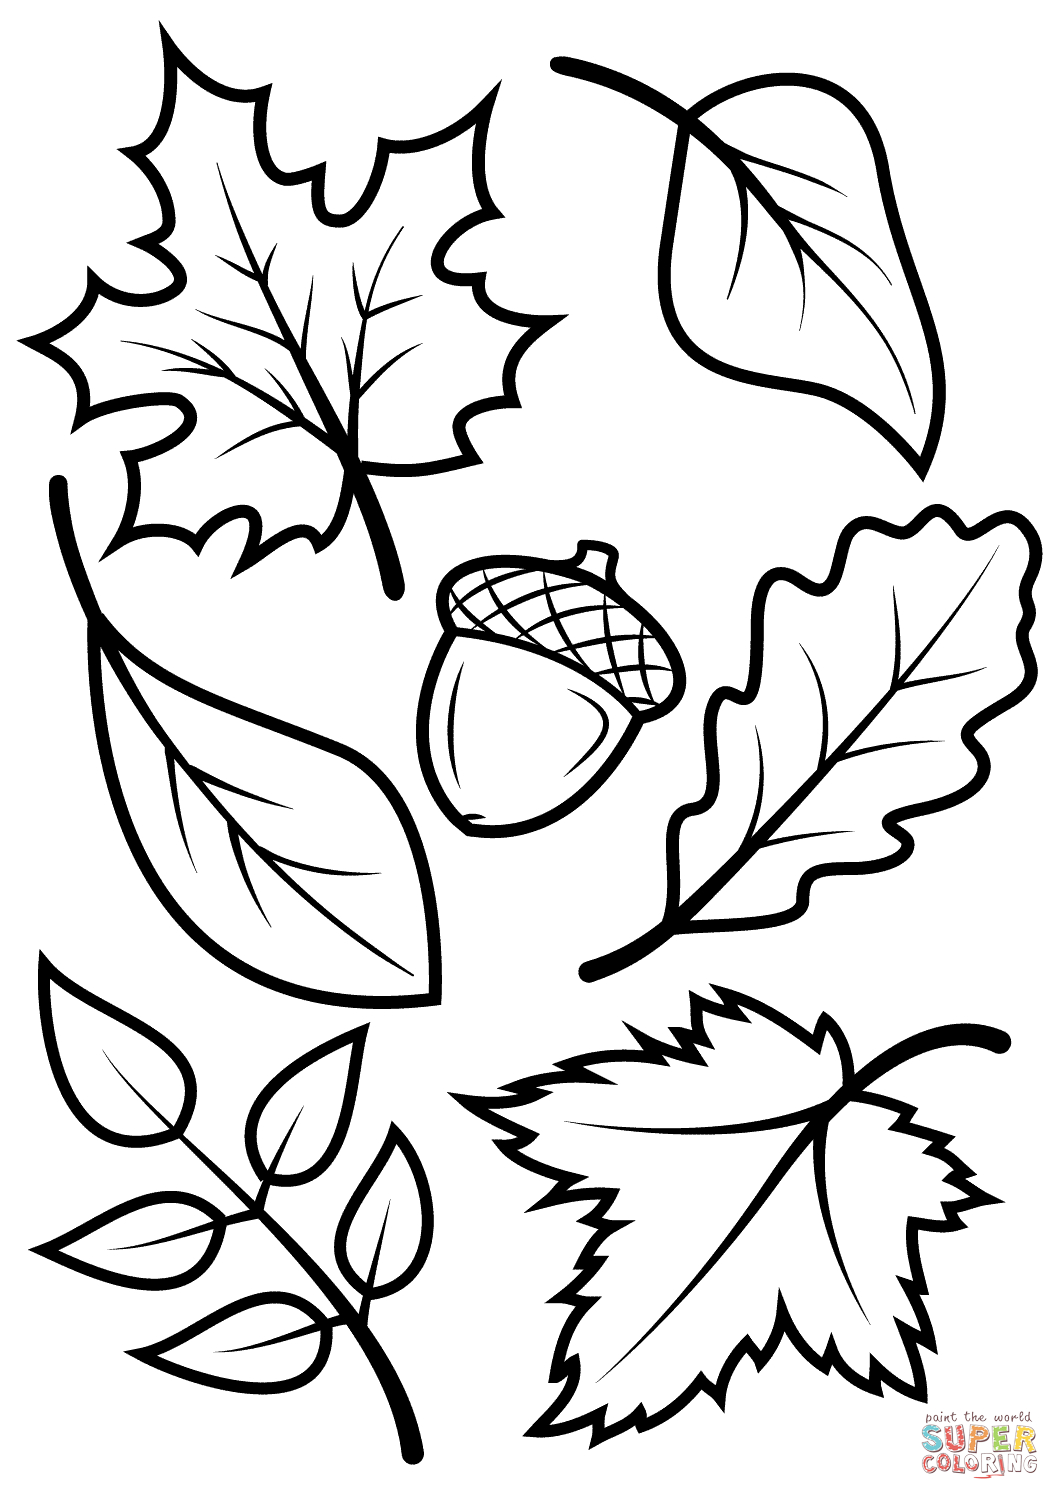 Fall Leaves And Acorn Coloring Page   Free Printable Coloring Pages - Fall Printable Coloring Pages Free